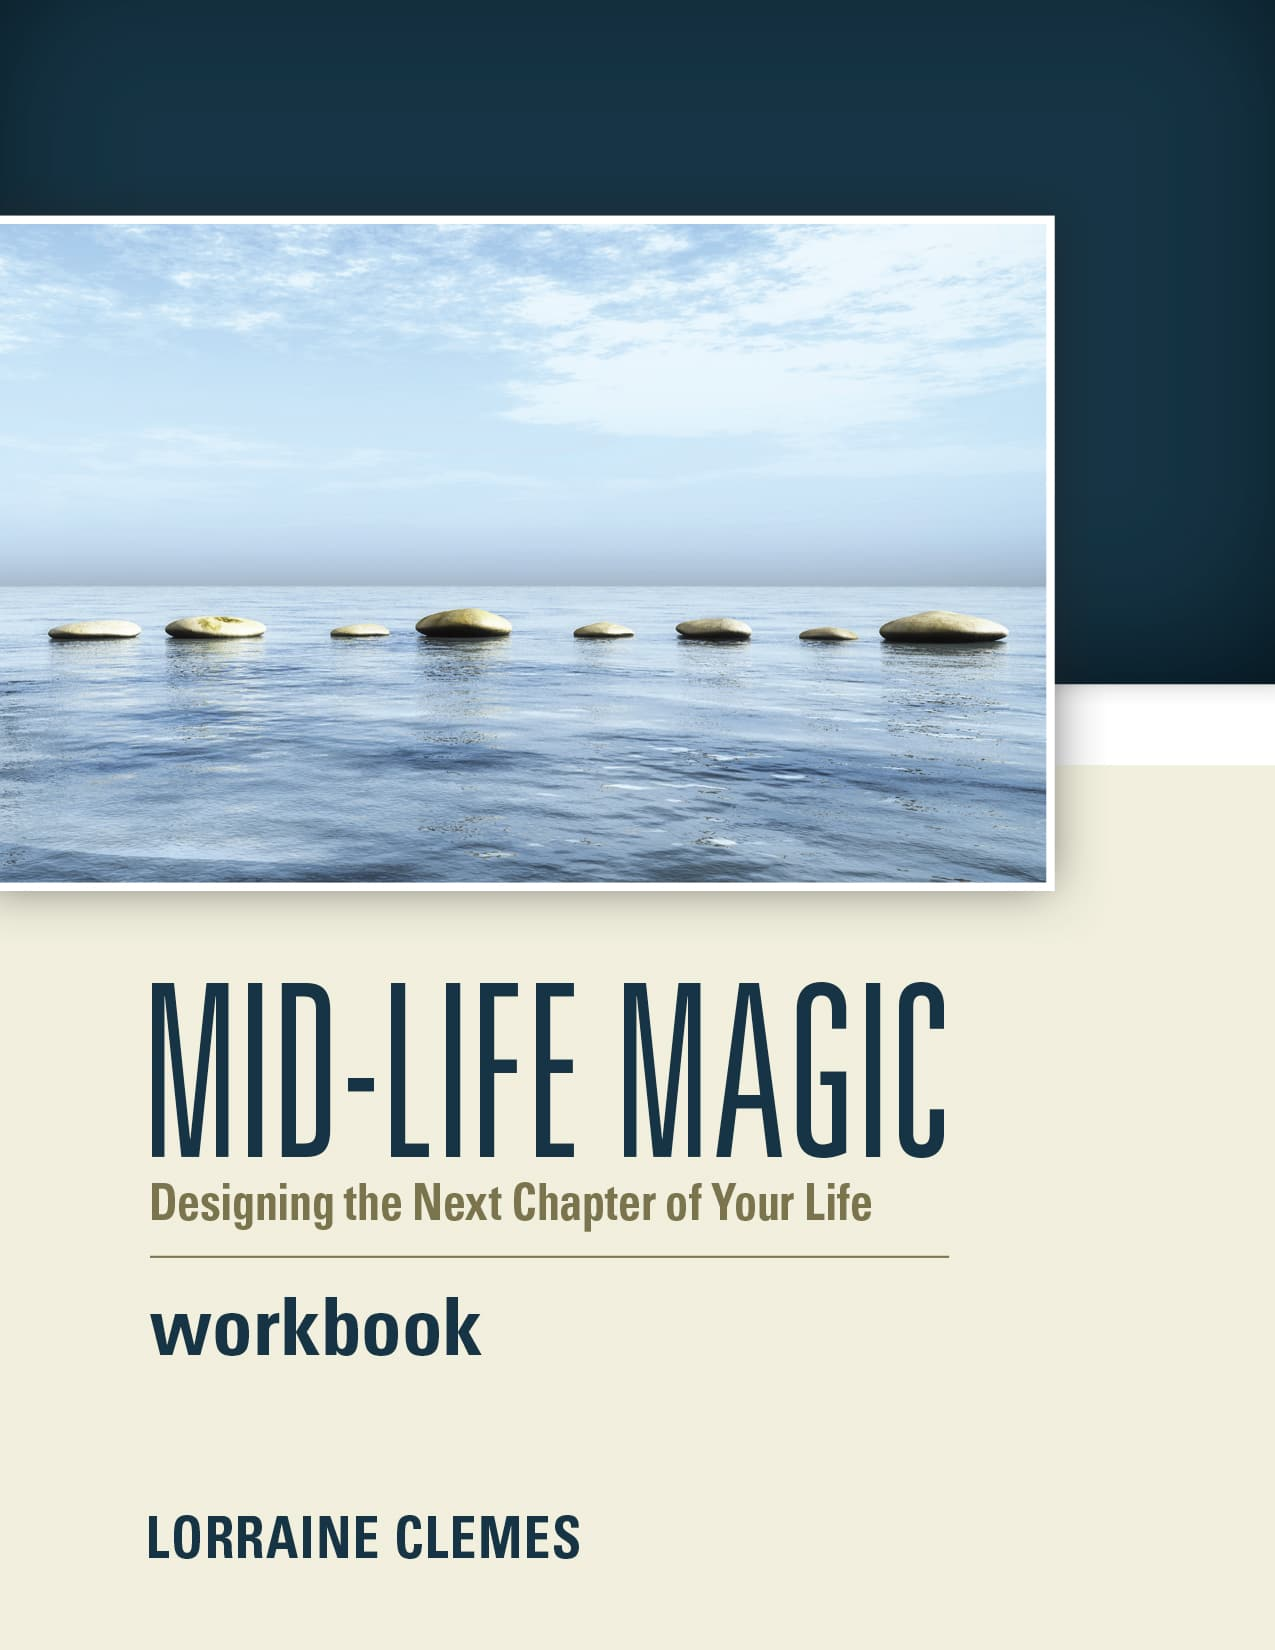 Mid-life Magic Workbook cover